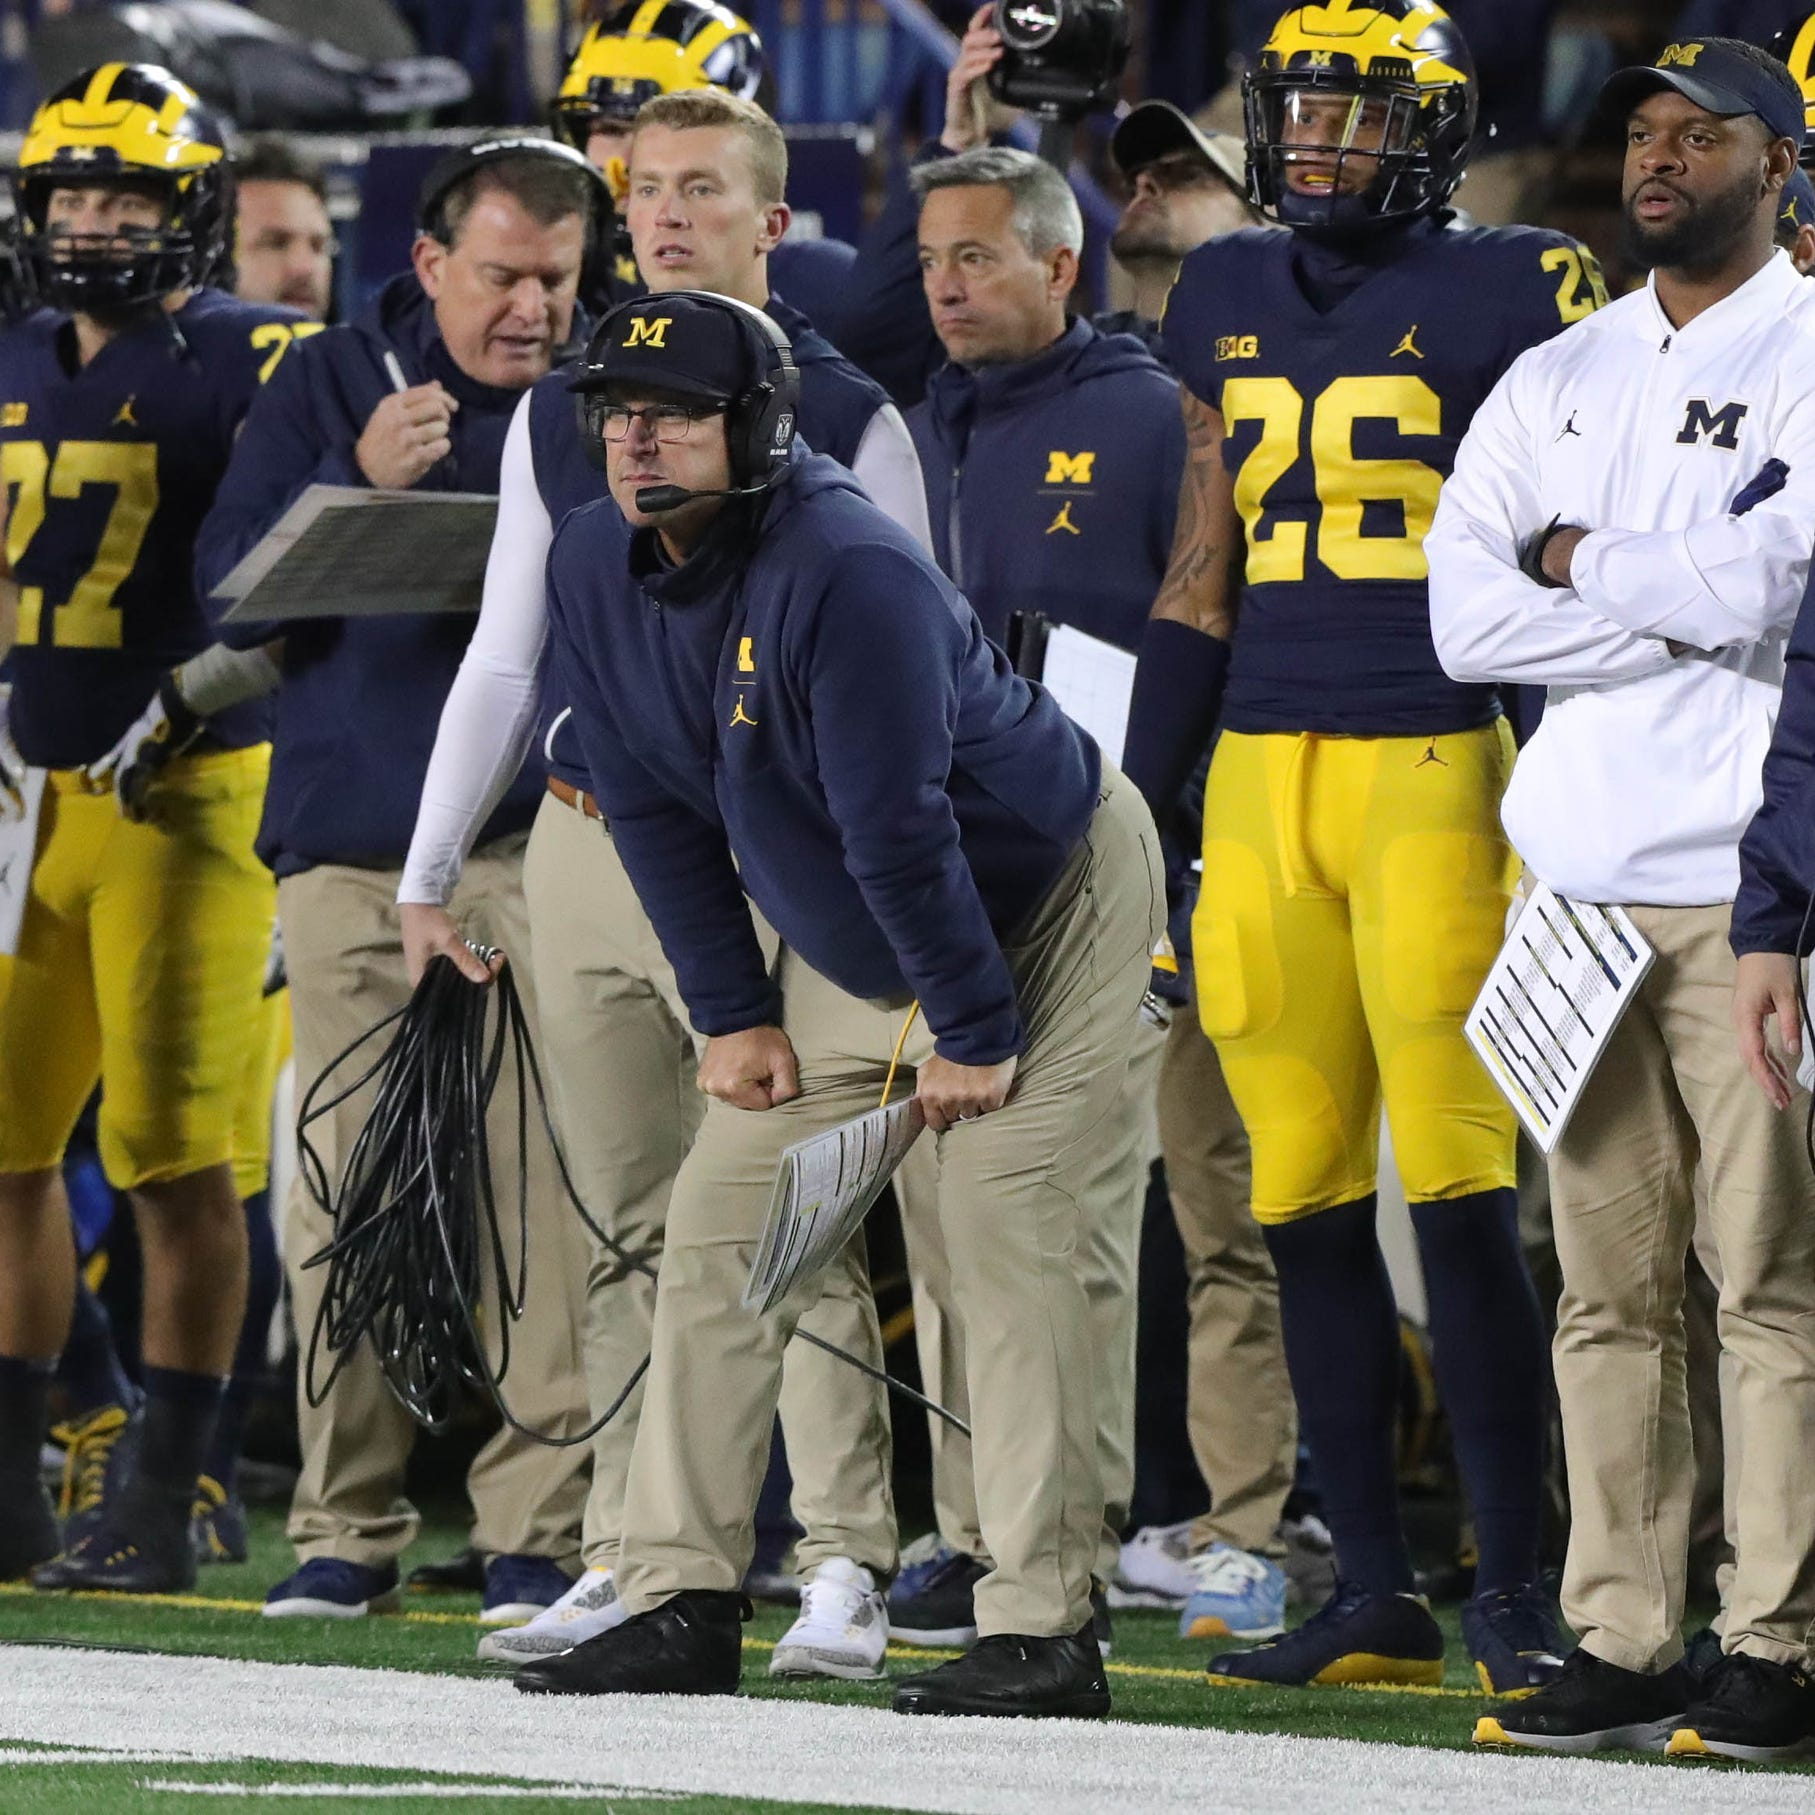 Michigan's Ed Warinner, Mark Dantonio's old roommate, in unique spot